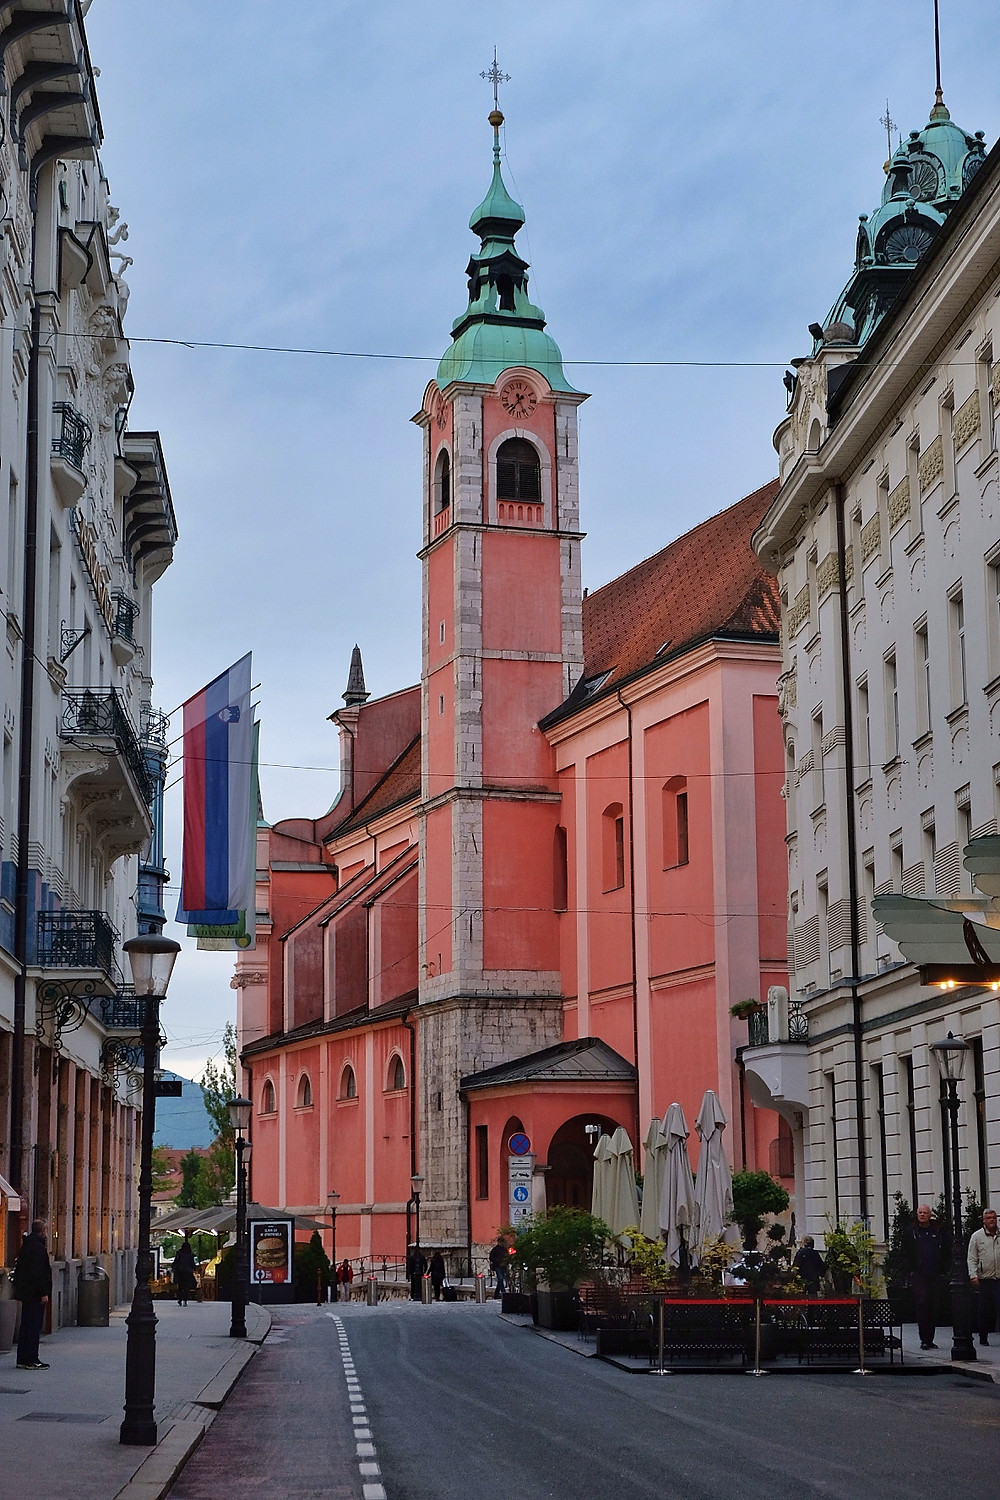 Franciscan Monastery and Church of the Annunciation, Ljubljana, Slovenia